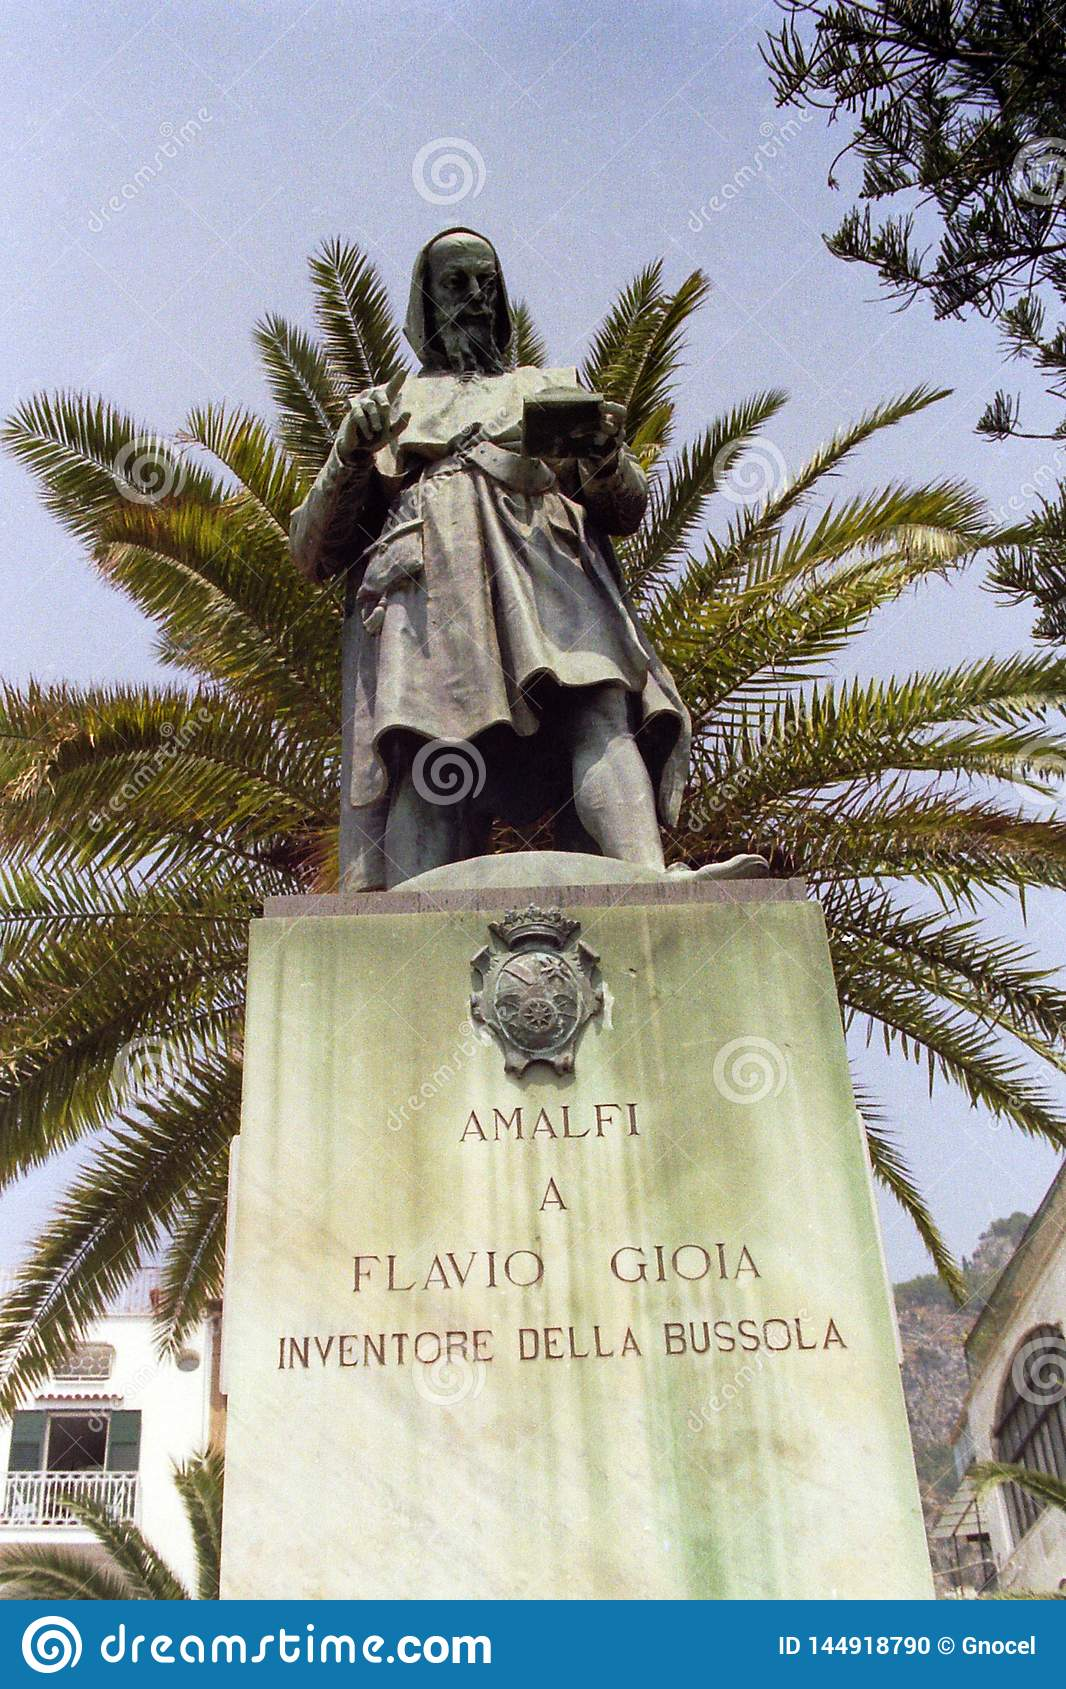 AMALFI, ITALY, 1980 - In the square of the same name stands the statue of to Falvio Gioia, the mythical inventor of the compass,